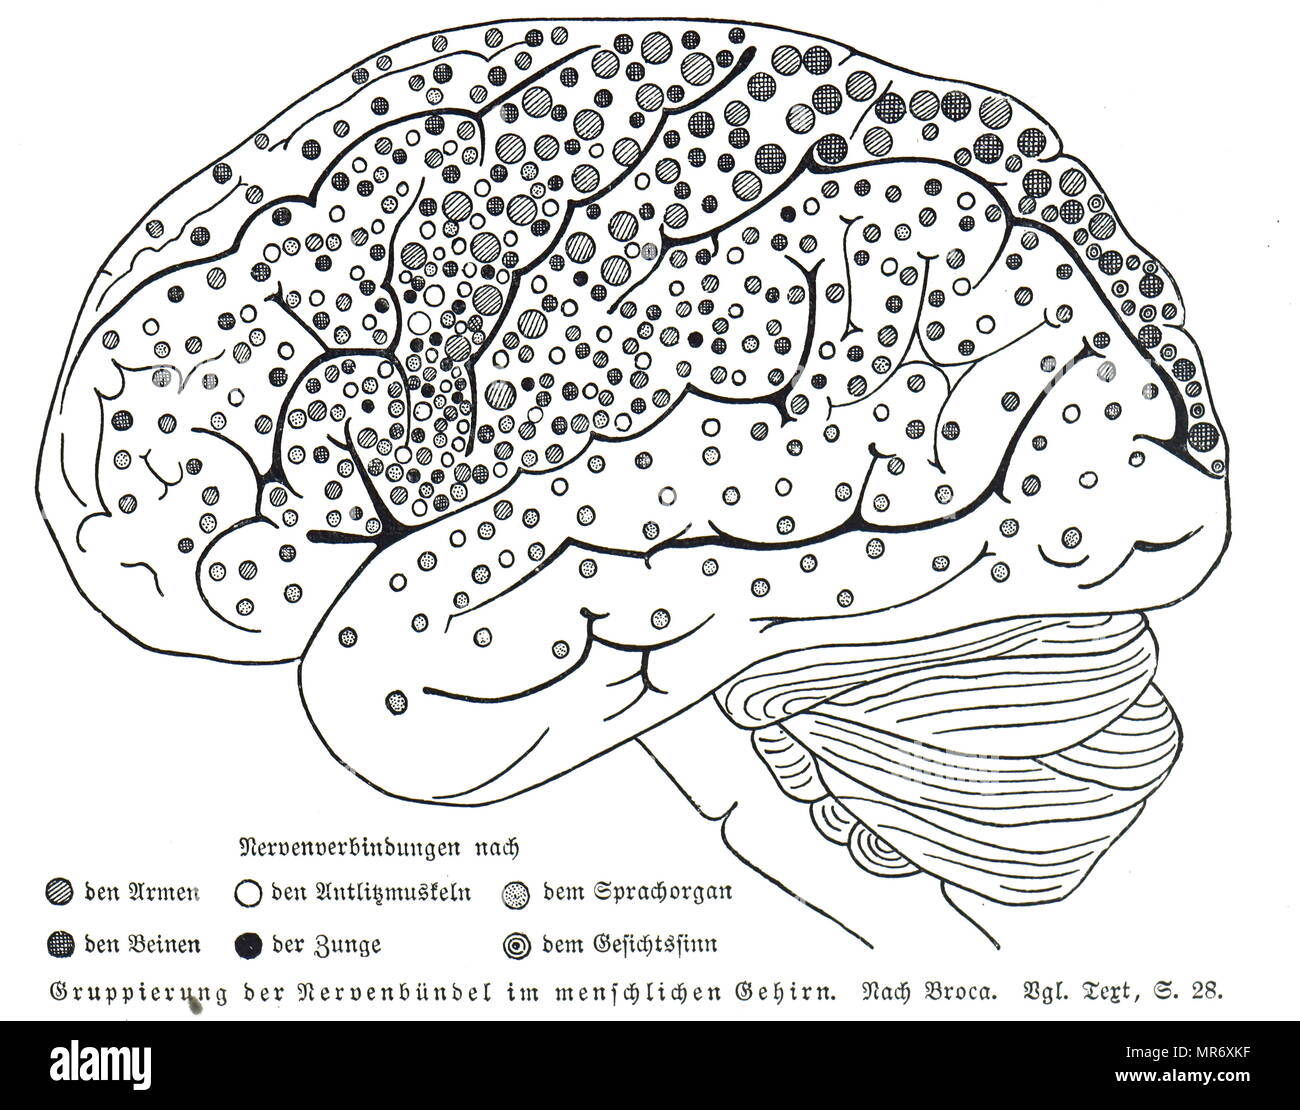 Map of nerve bundles in the human brain by Paul Broca. Paul Broca (1824-1880) a French physician, anatomist and anthropologist. Dated 19th century - Stock Image